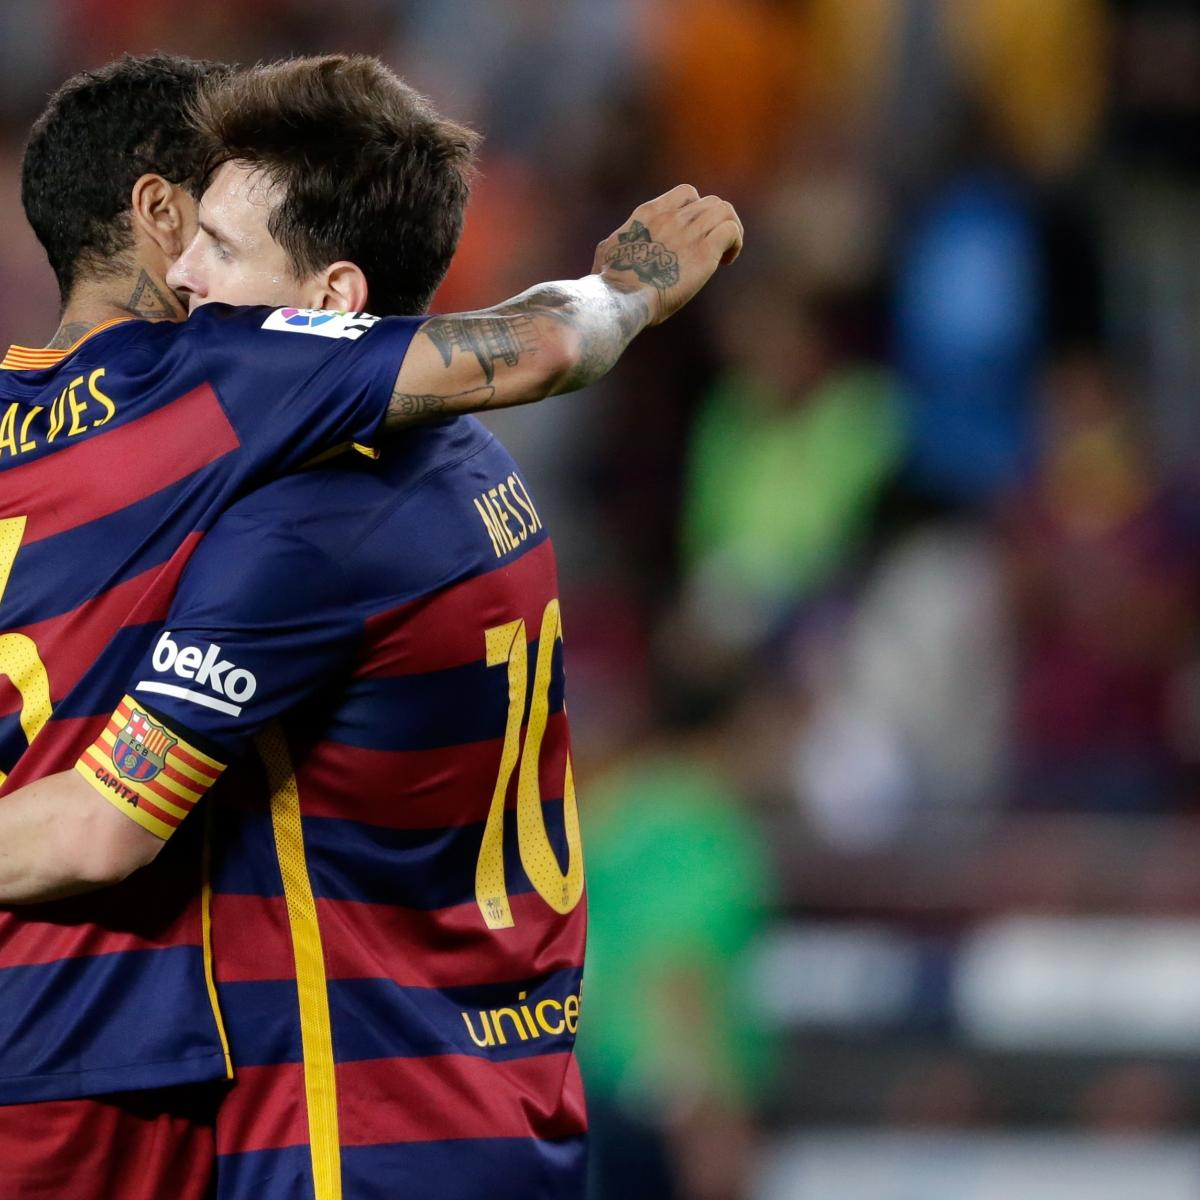 Celta Vigo Vs. Barcelona: Live Score, Highlights From La